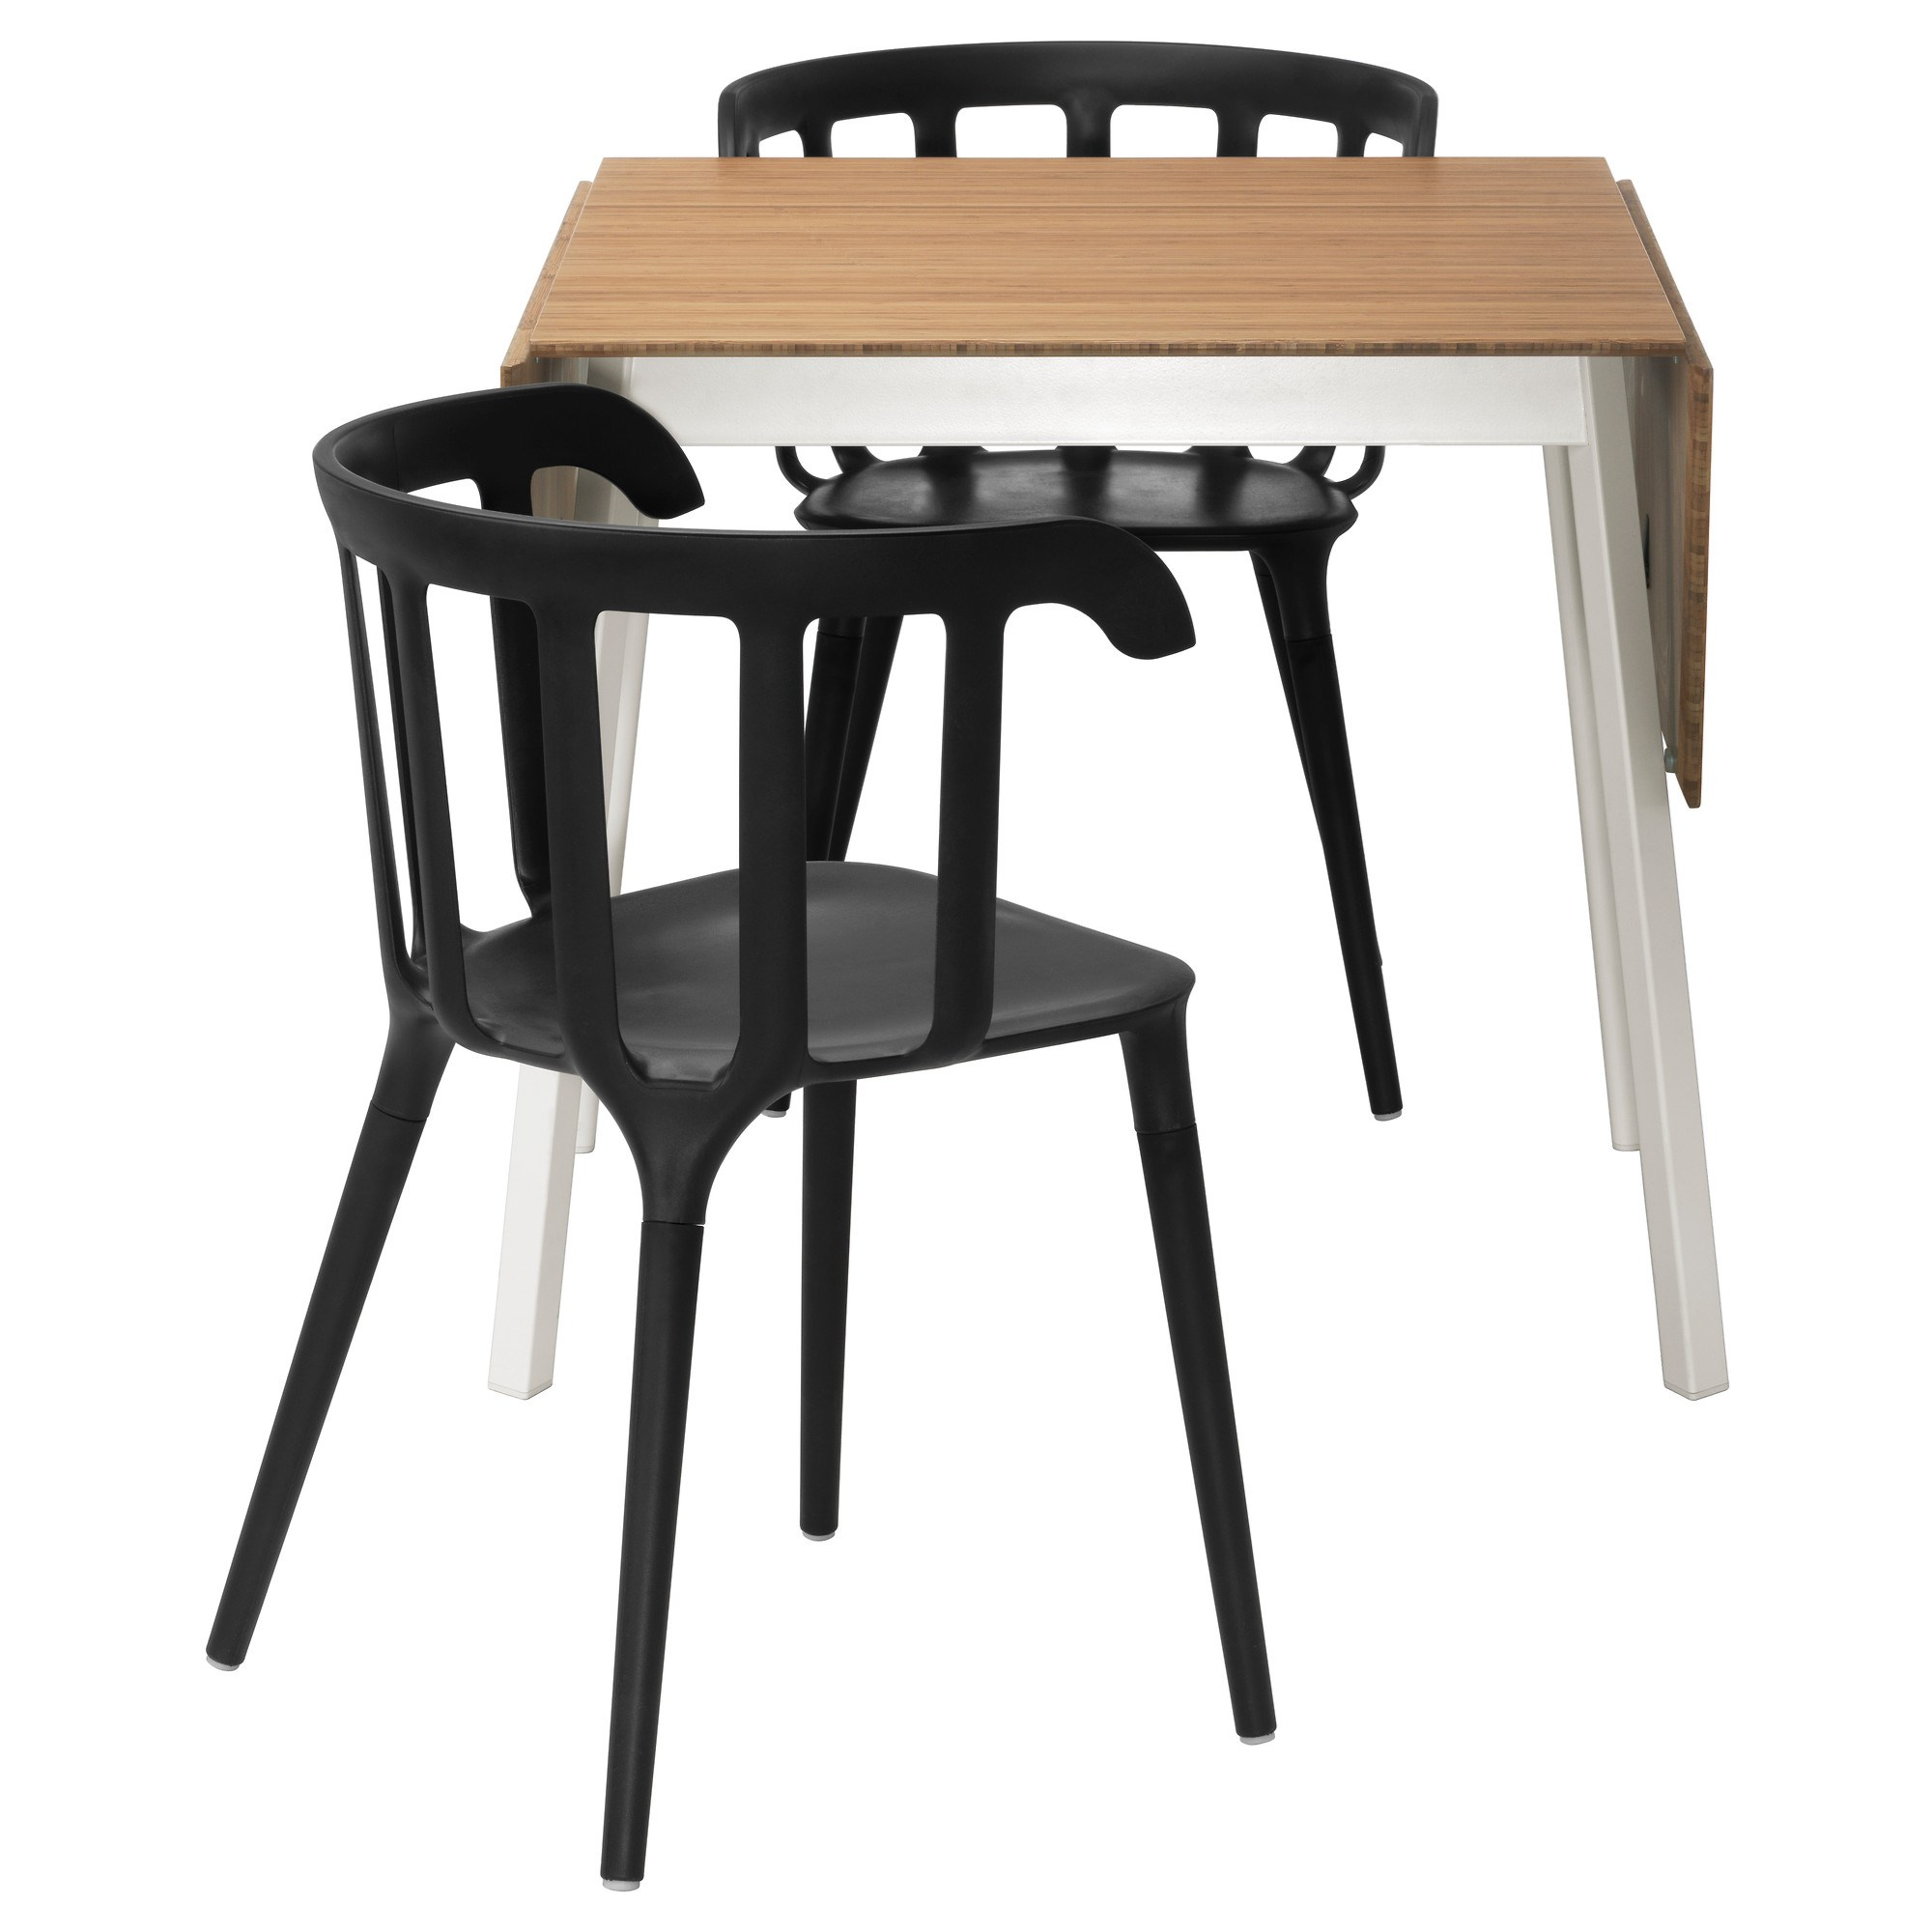 Ikea Ps 2017 Dining Table And Chairs Bamboo Black 74 Cm Room